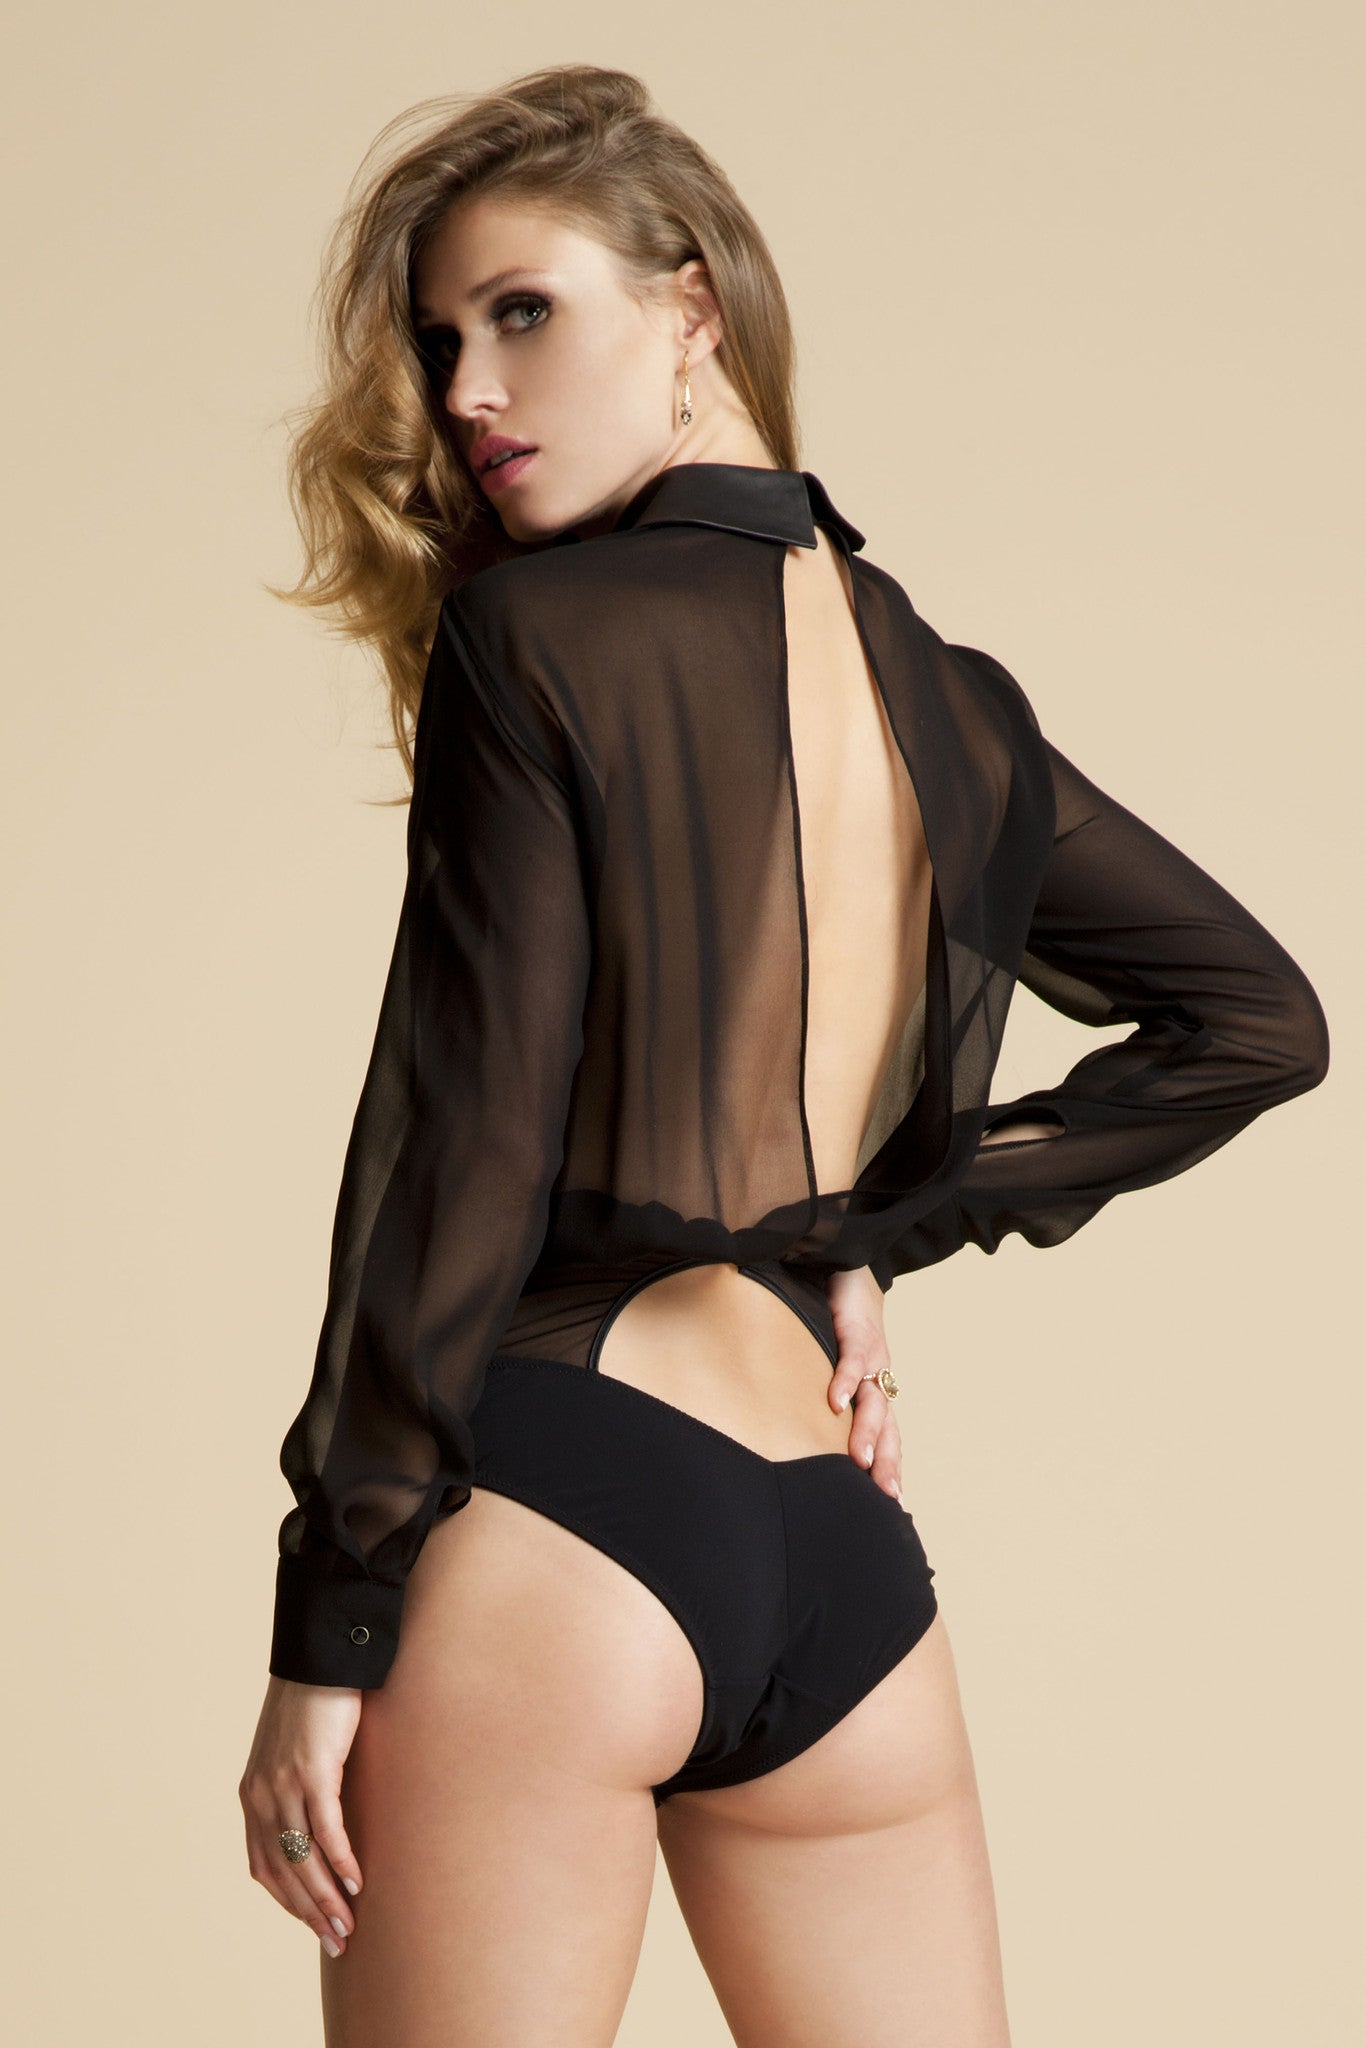 Lula Black blouse bodysuit with open back detailing